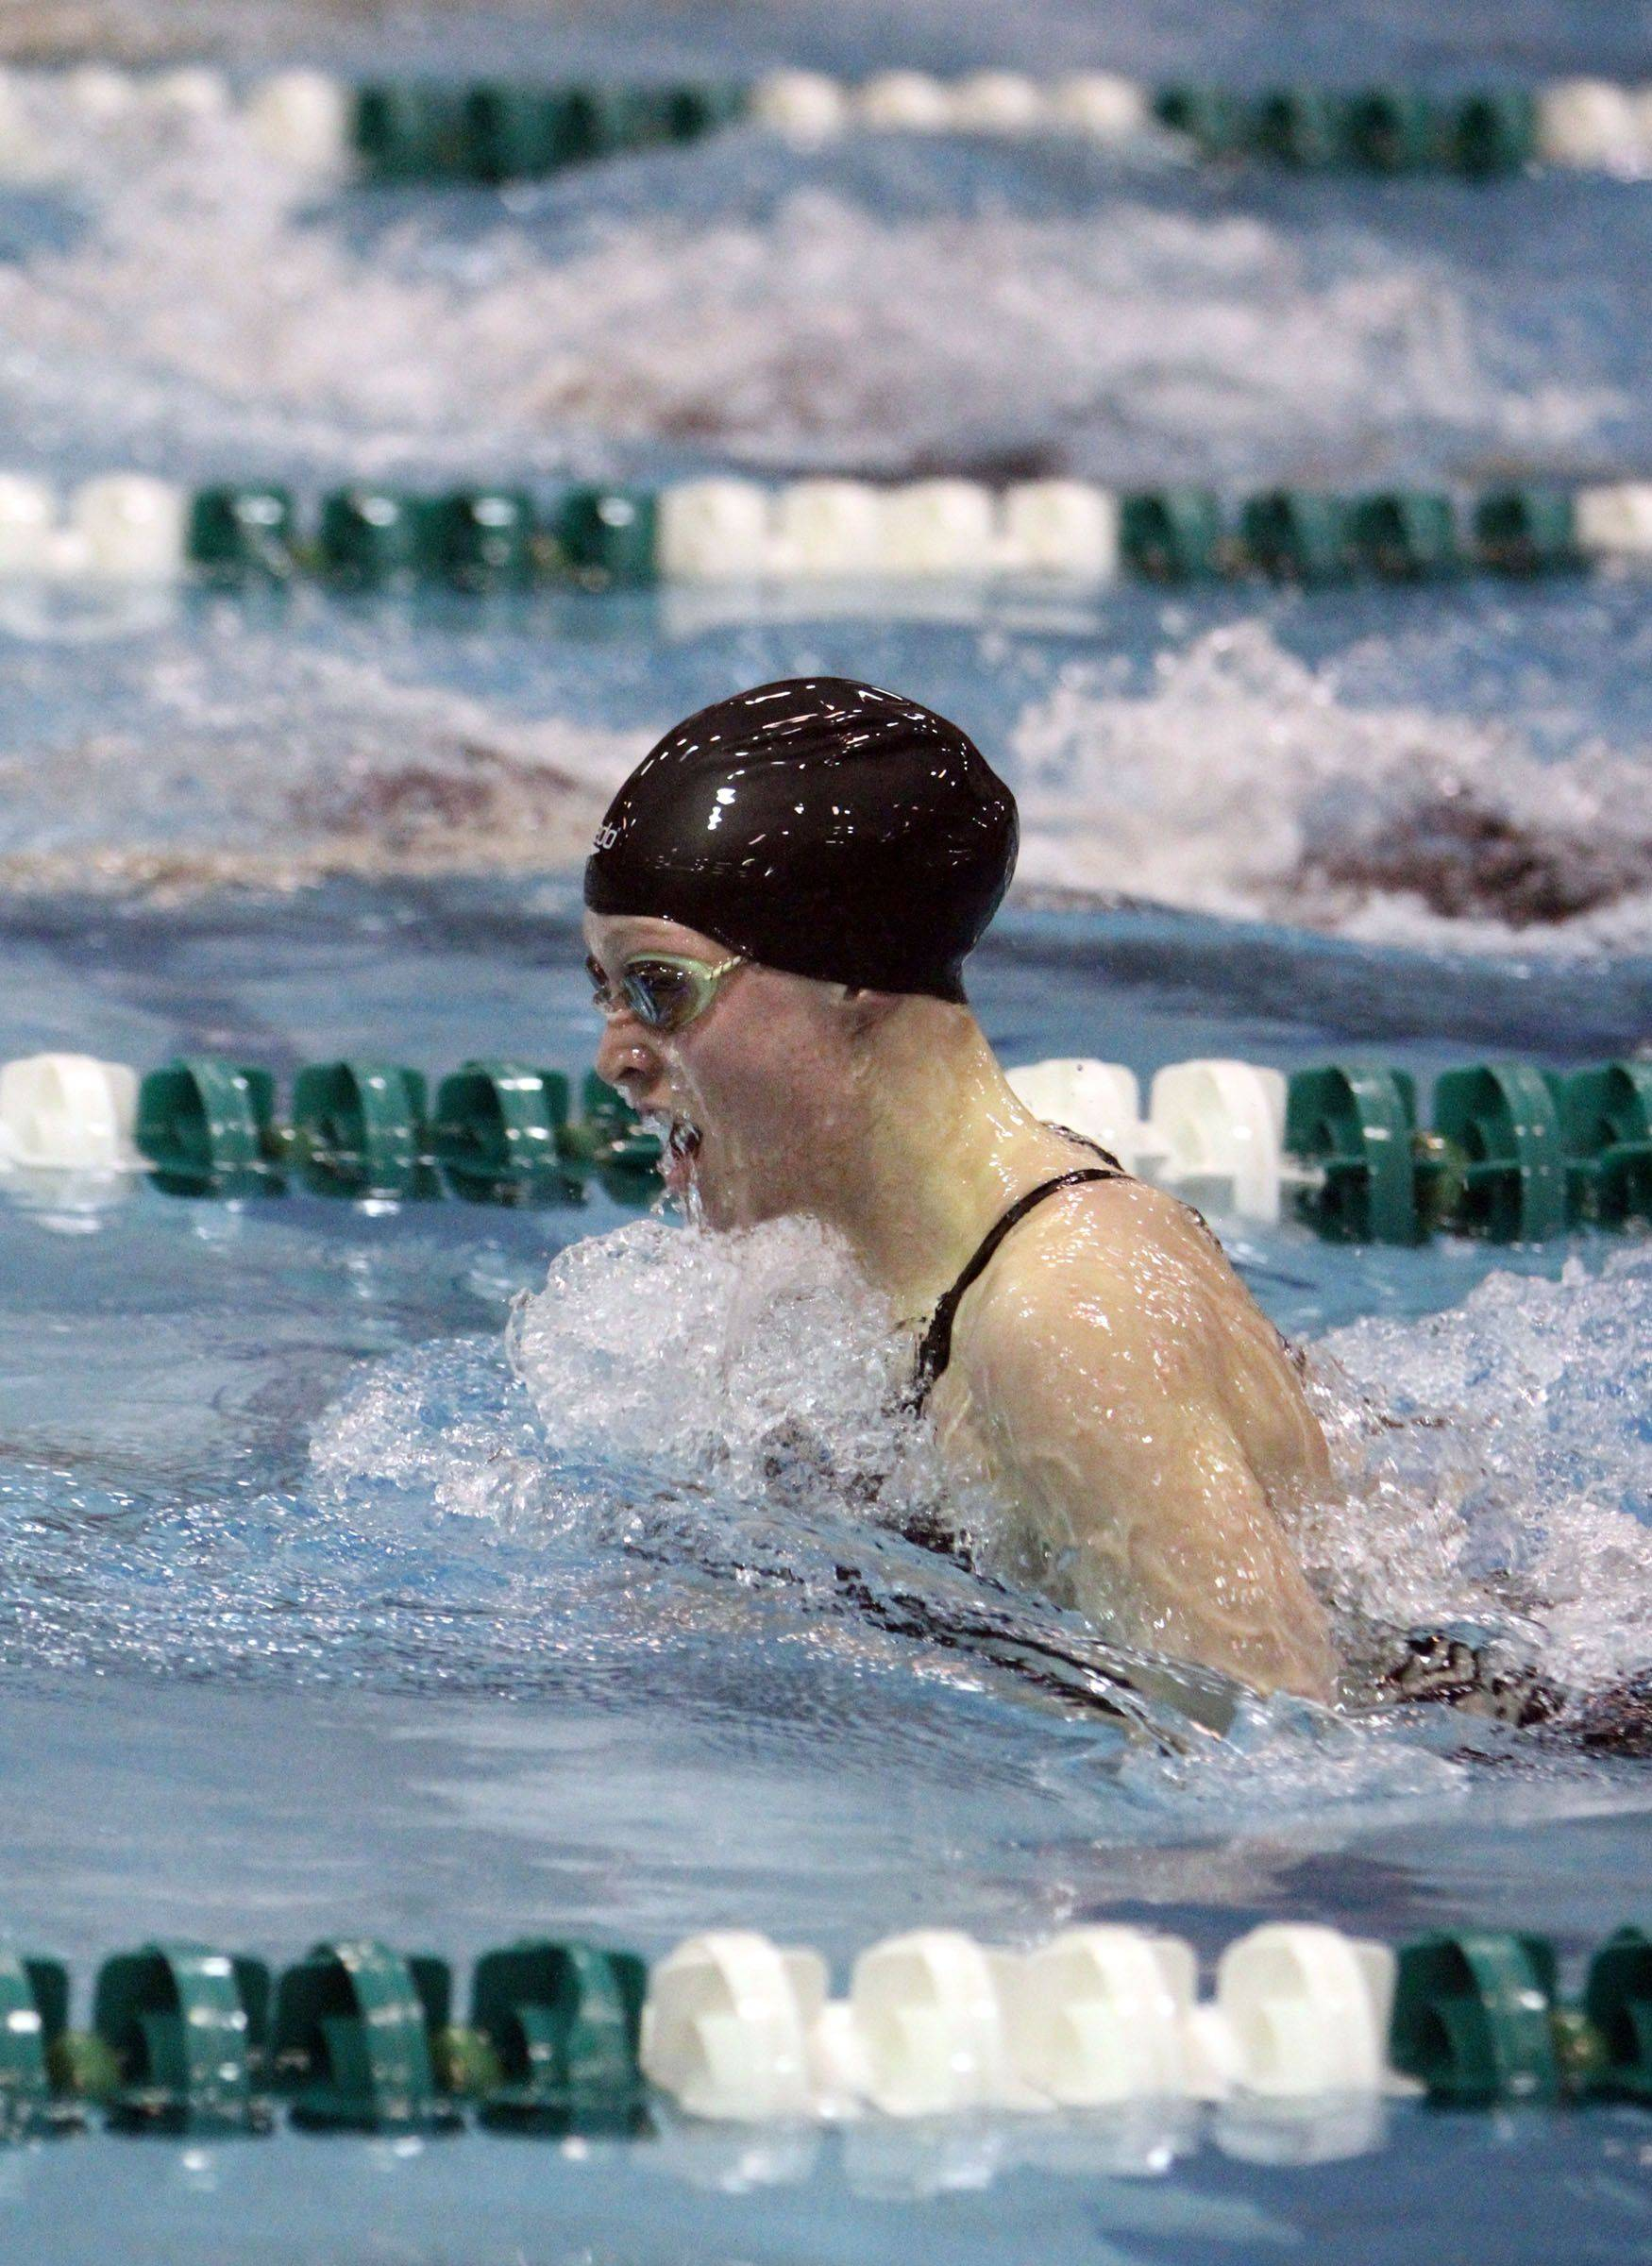 Loyola Academy's Michelle Garland, of Grayslake, finished third in the 100-yard breaststroke at IHSA state championships in Winnetka on Saturday, November 19th.